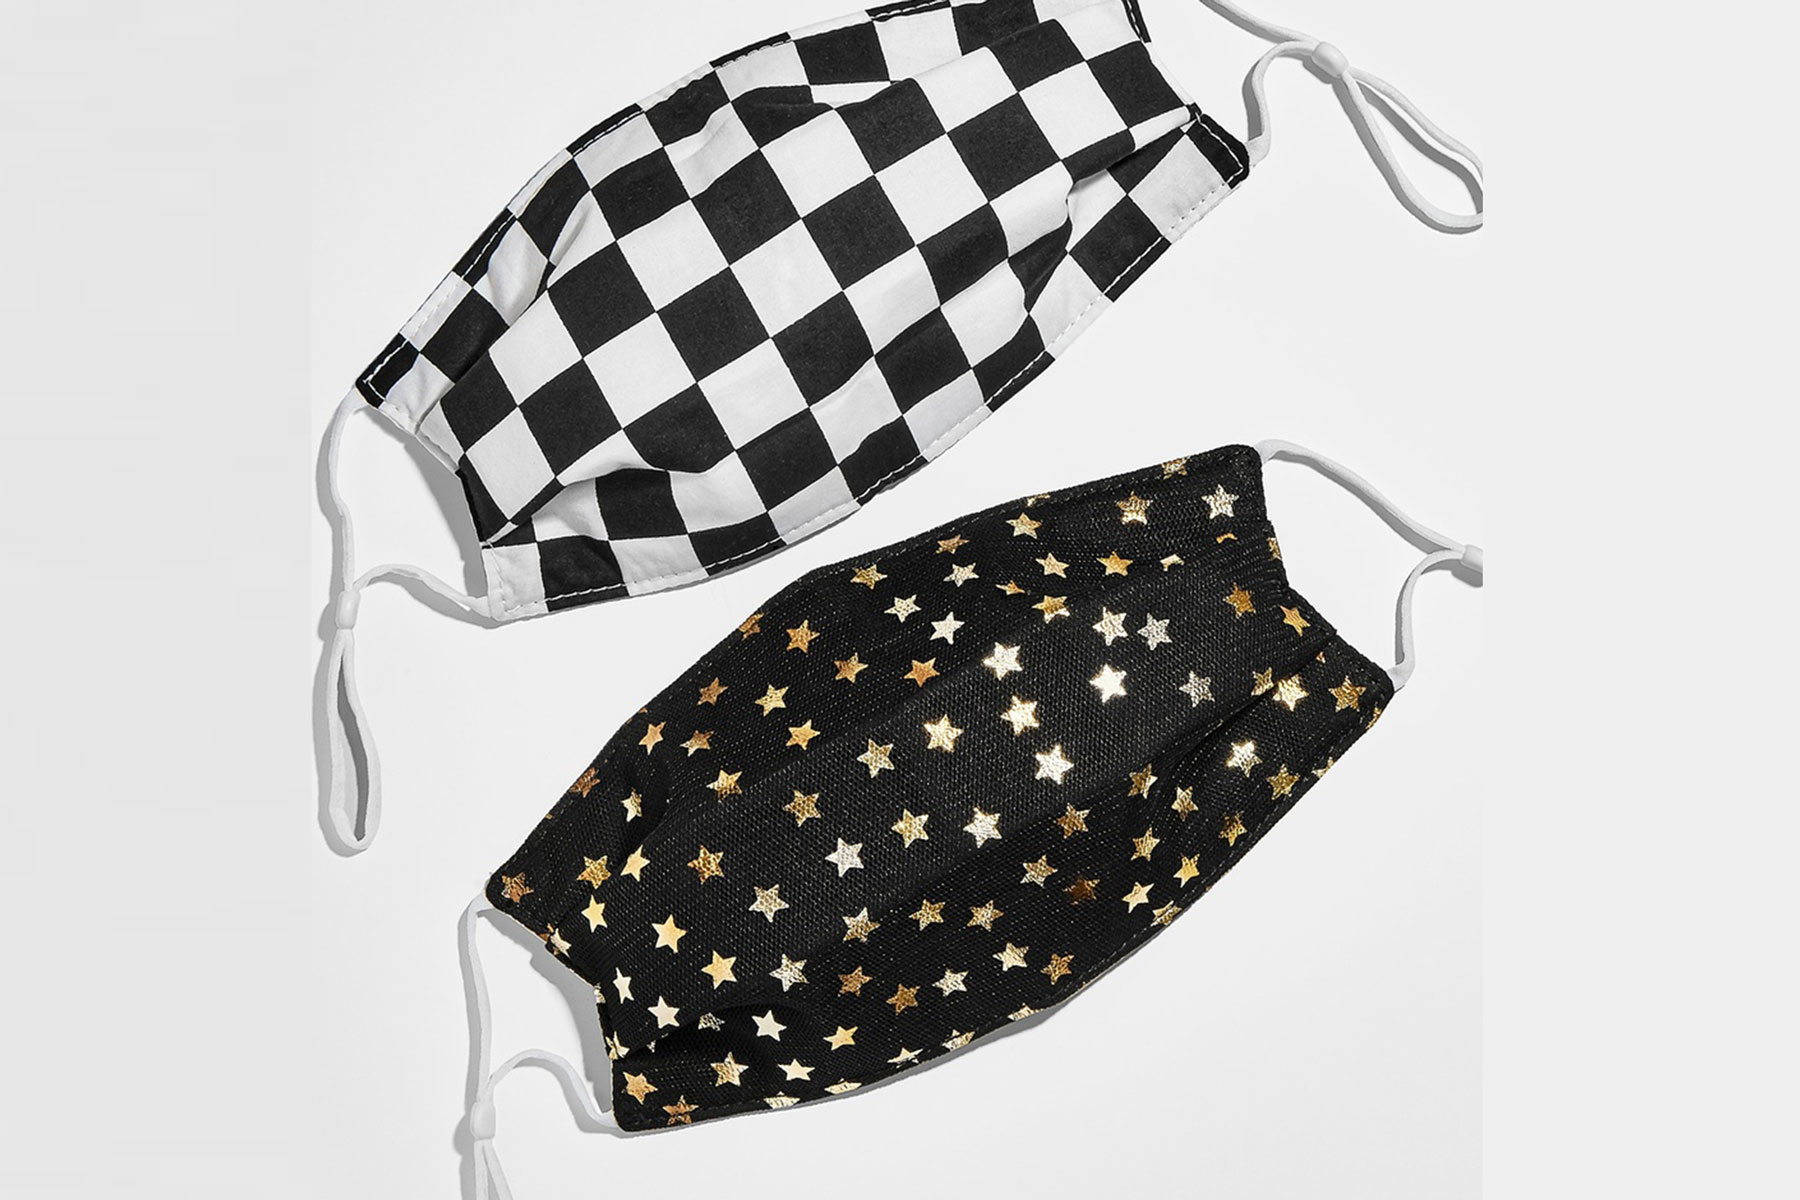 Black and white patterned face masks